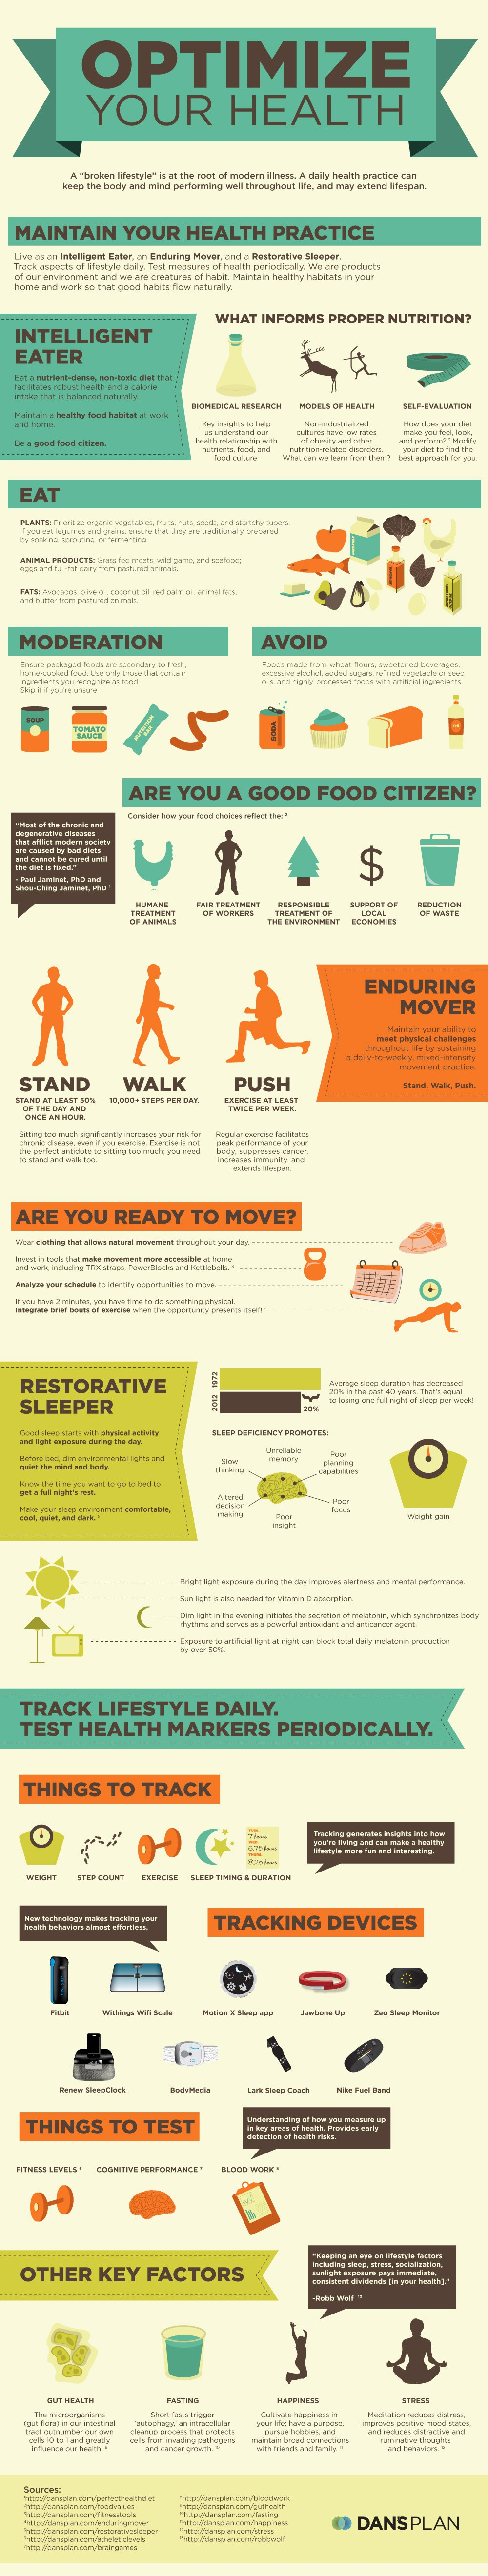 A Guide To Achieving The Healthiest Lifestyle - Infographic